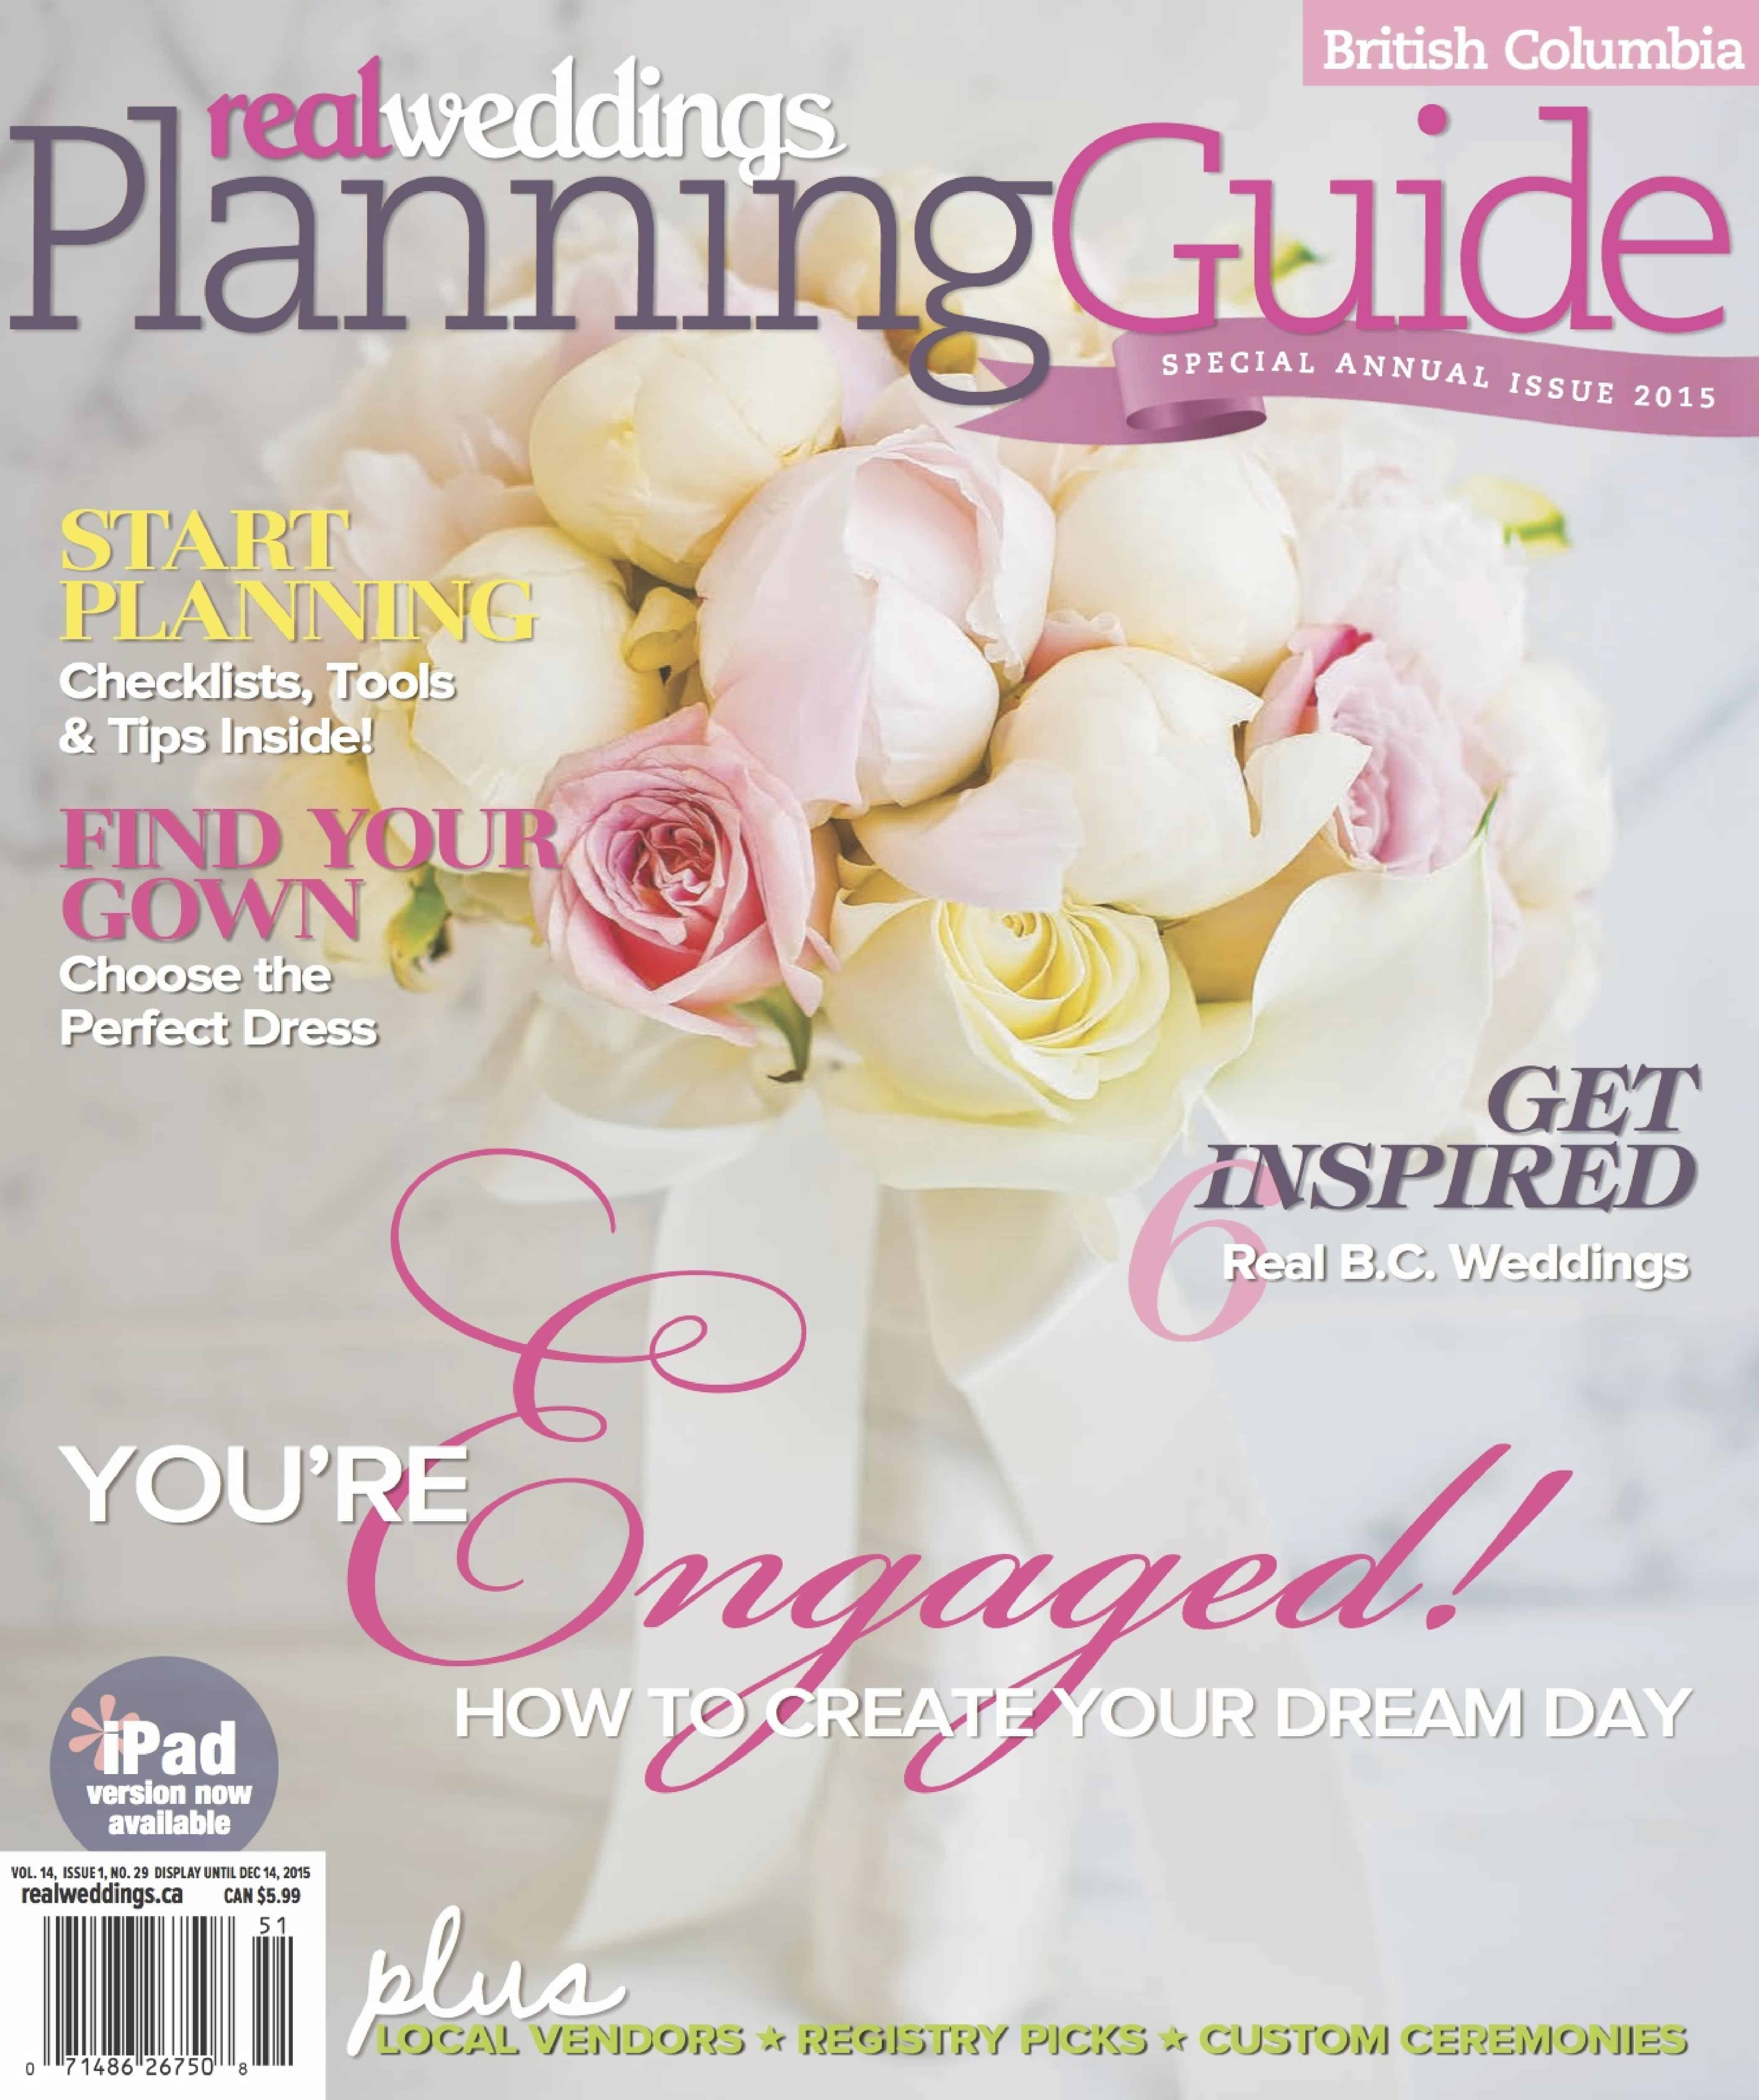 PlanningGuide2015Cover.jpg